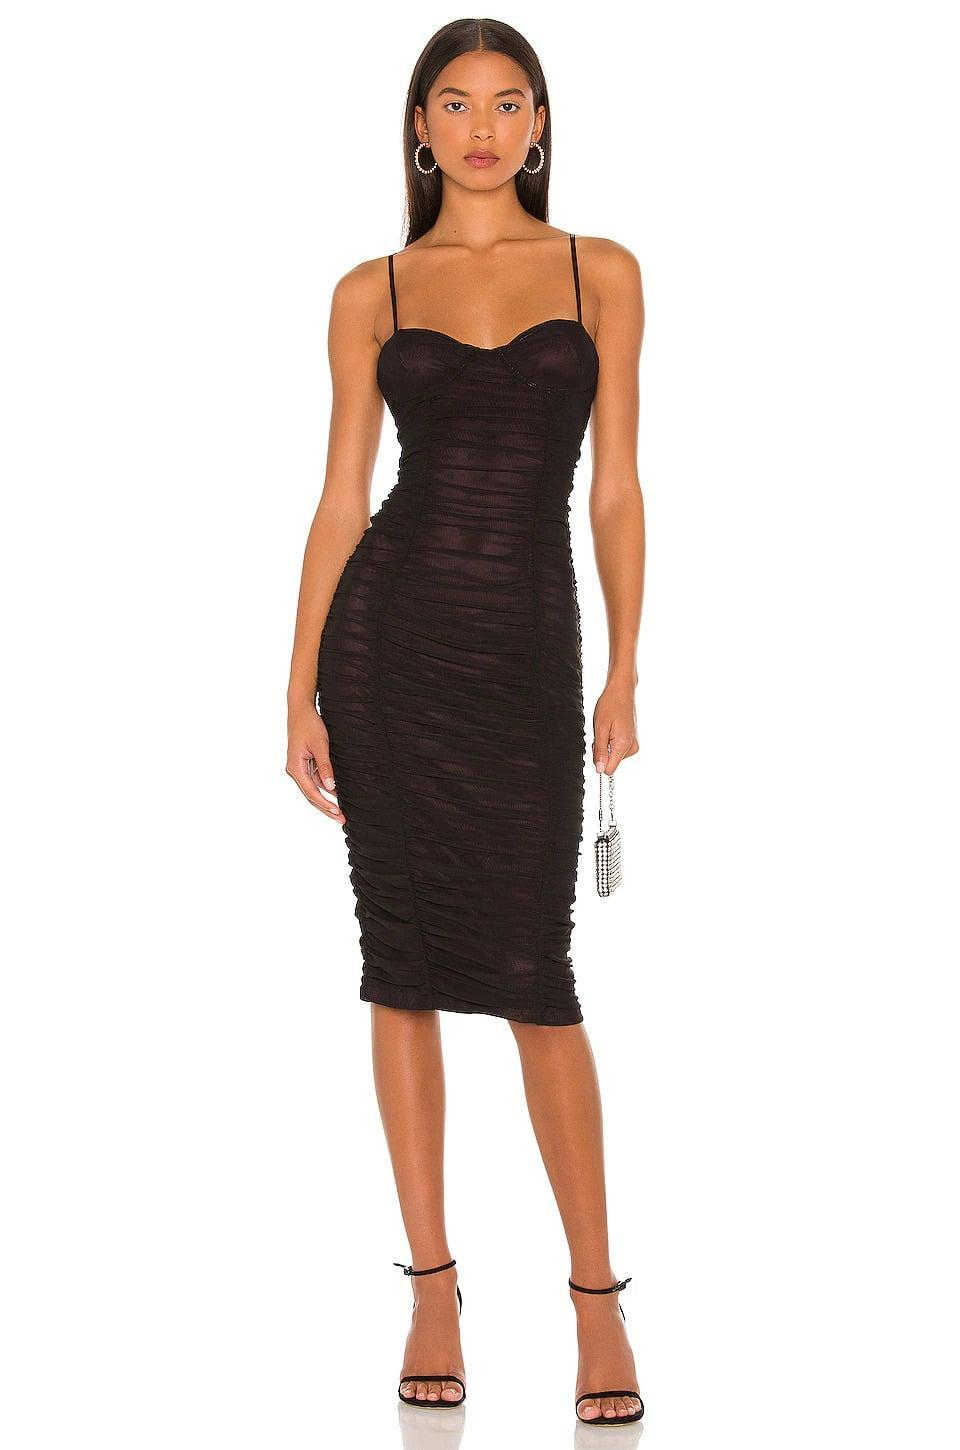 <p>The <span>AFRM Shereen Dress in Port</span> ($78) is such a flattering and stunning dress, perfect for a night out. From rooftops to parties, you'll look and feel absolutely chic in this. </p>